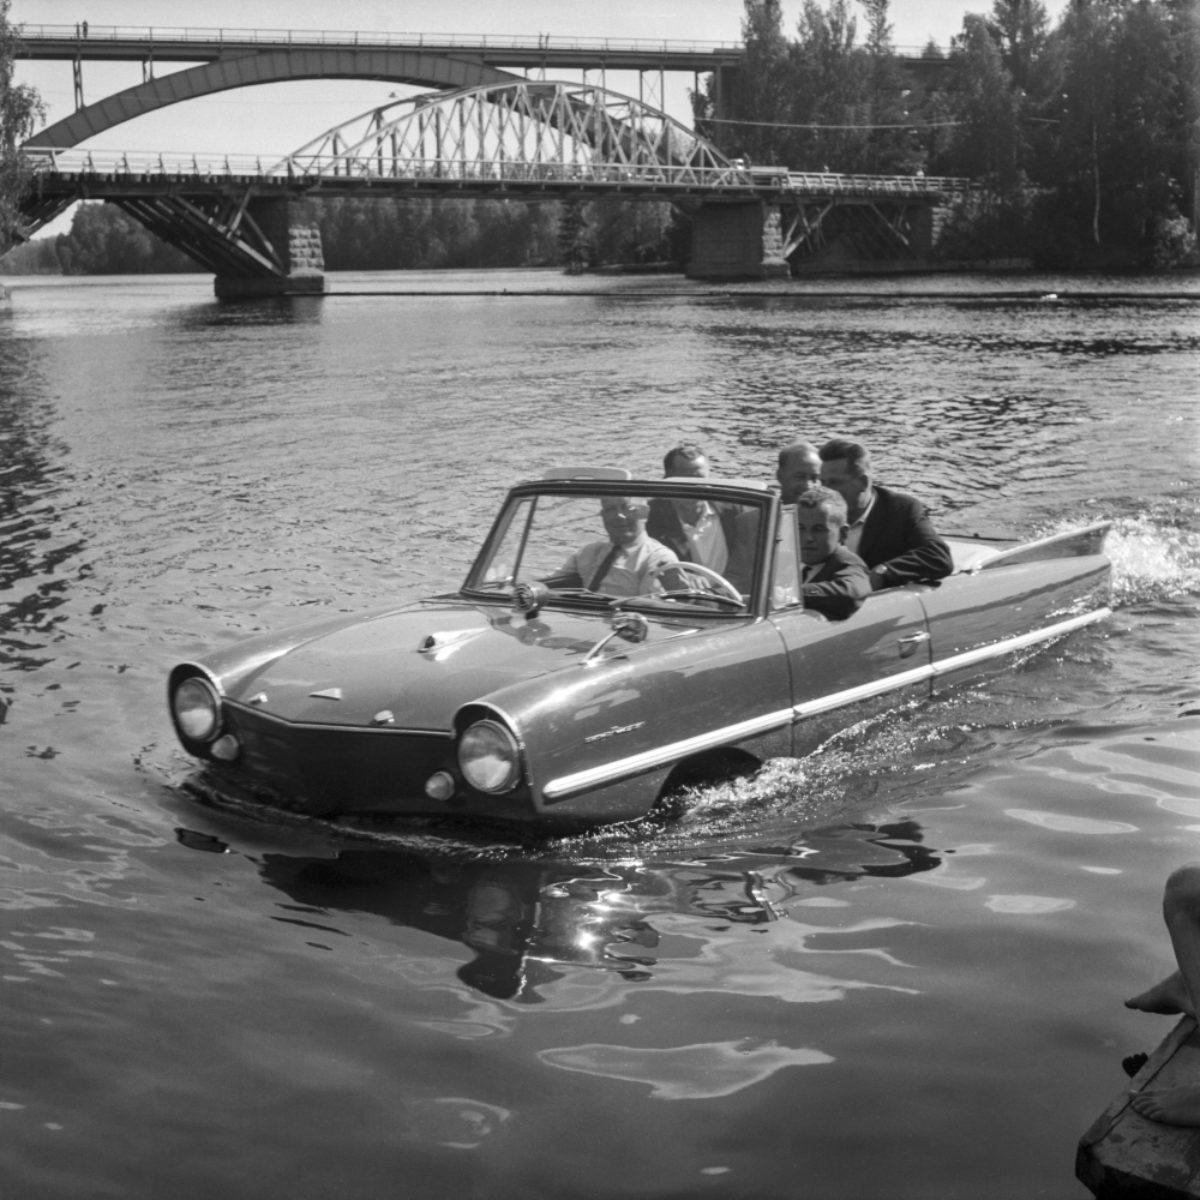 An amphibious car in the Jyränkö stream in Heinola on 6 July 1963. The Amphicar boasted a top speed of 14 km/h in water and 100 km/h on the road. The people on board remained perfectly dry. Photo: Itä-Häme / JOKA / Finnish Heritage Agency